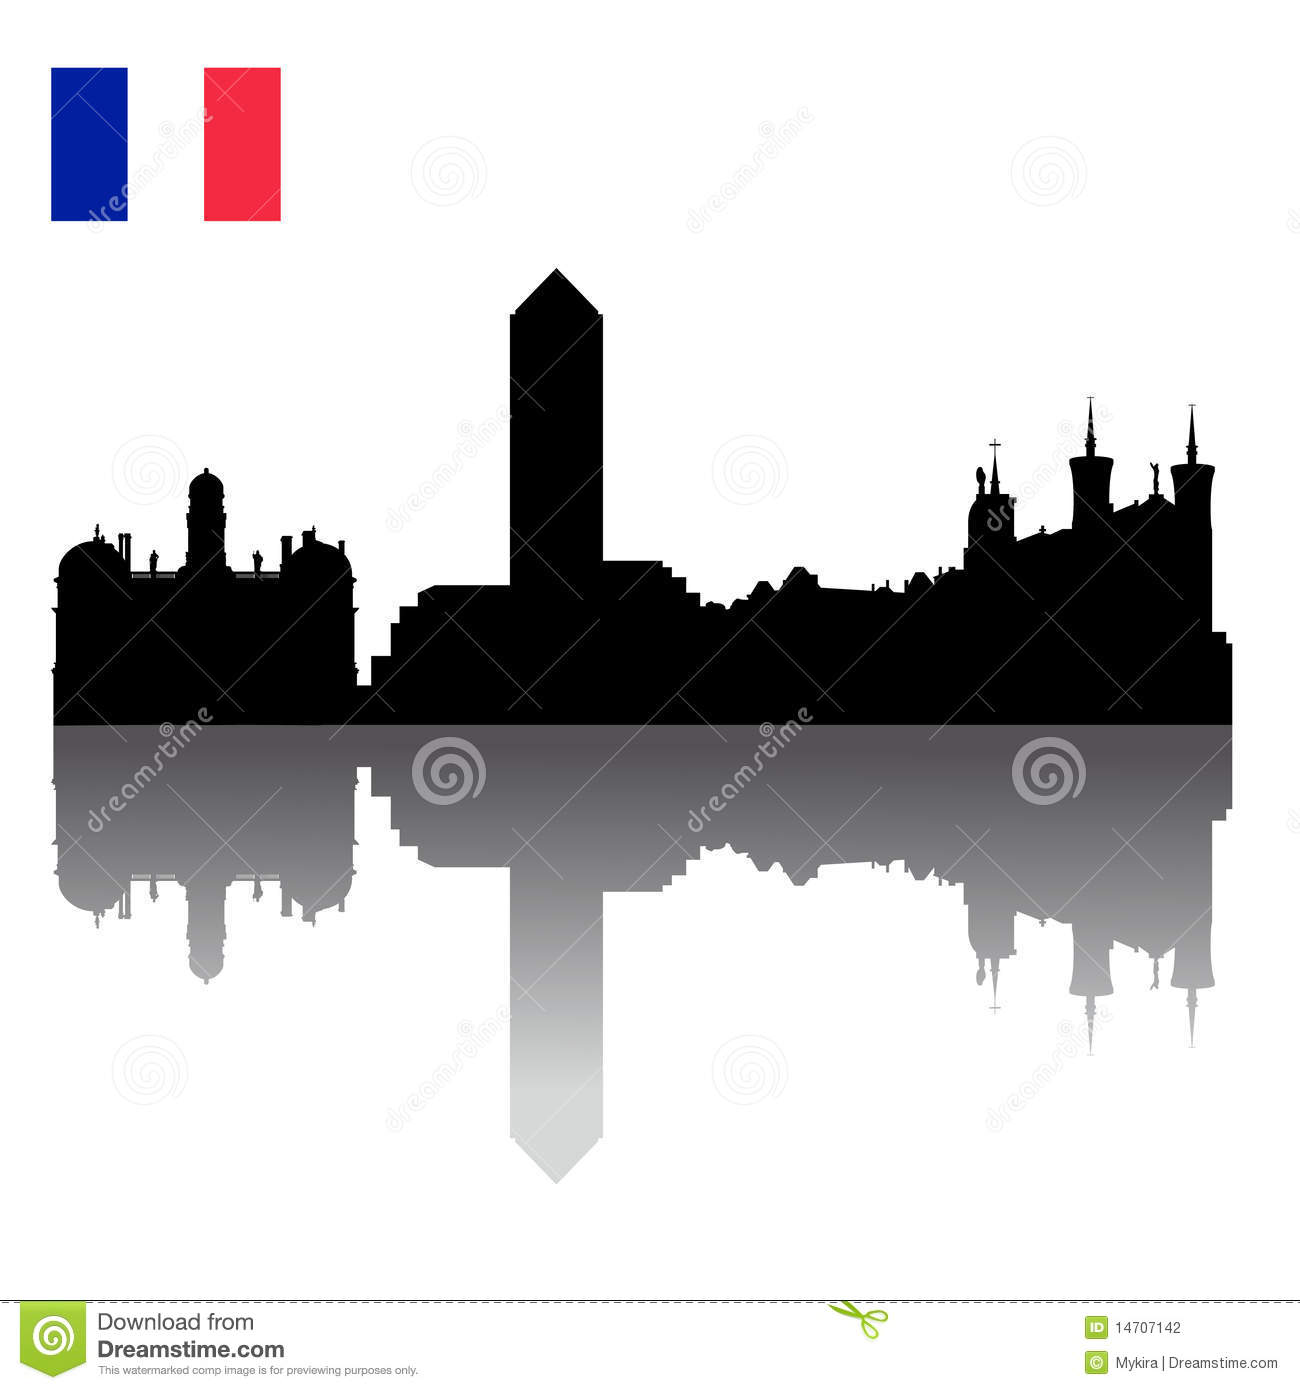 Lyon silhouette skyline with french flag